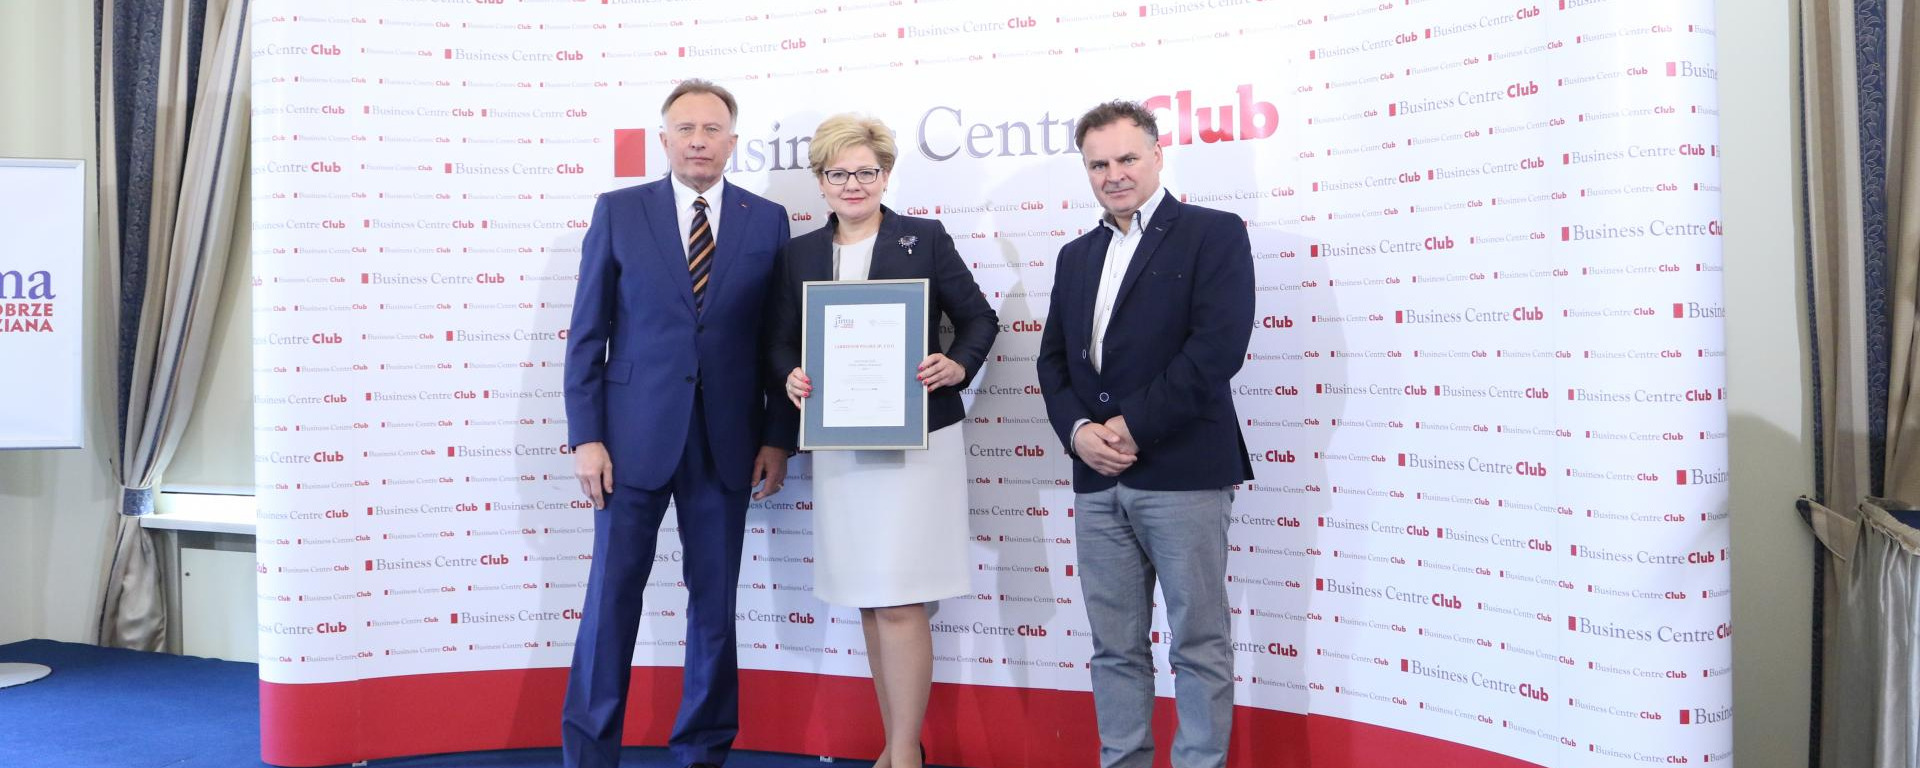 Carrefour Poland won two awards for its CSR activities